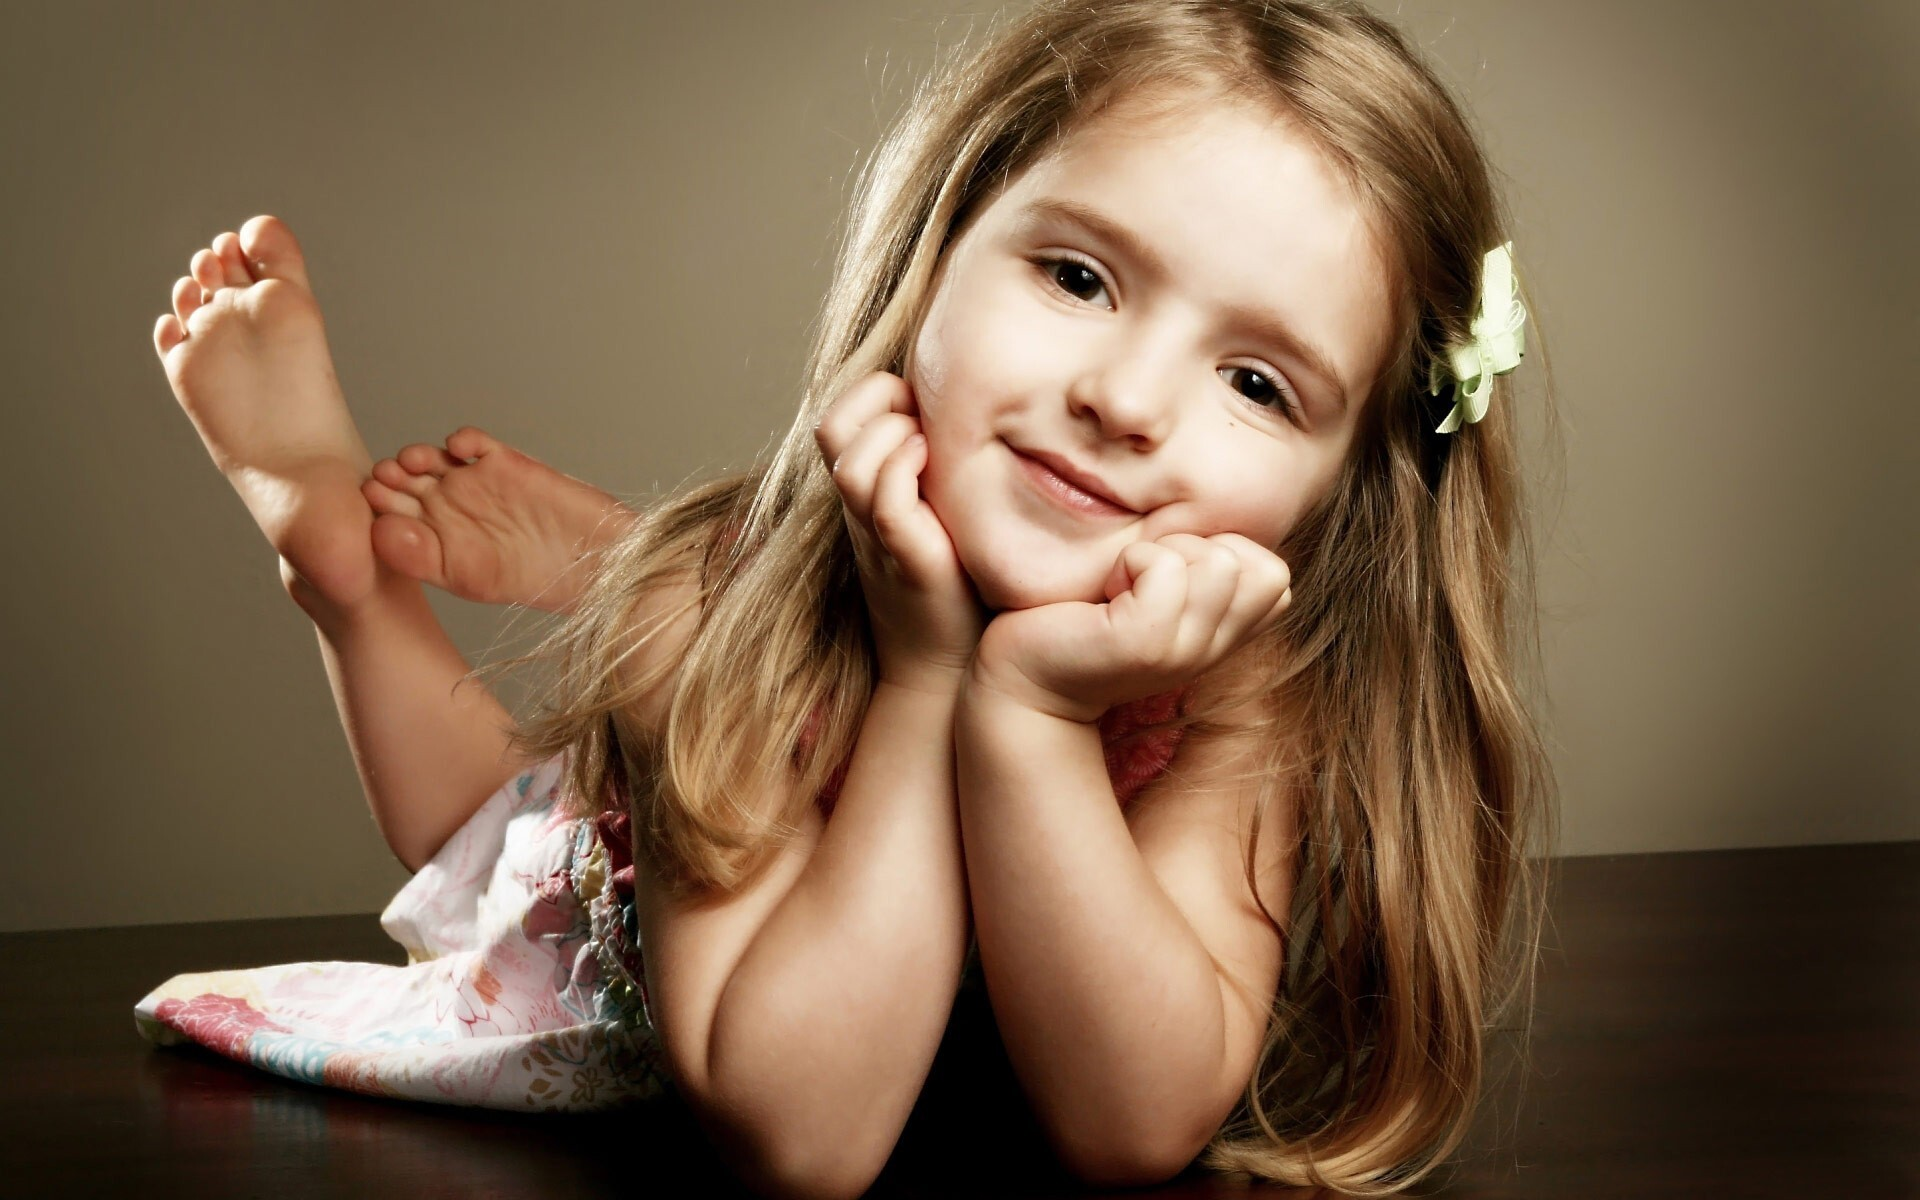 pretty cute baby girl nice wallpapers | hd wallpapers